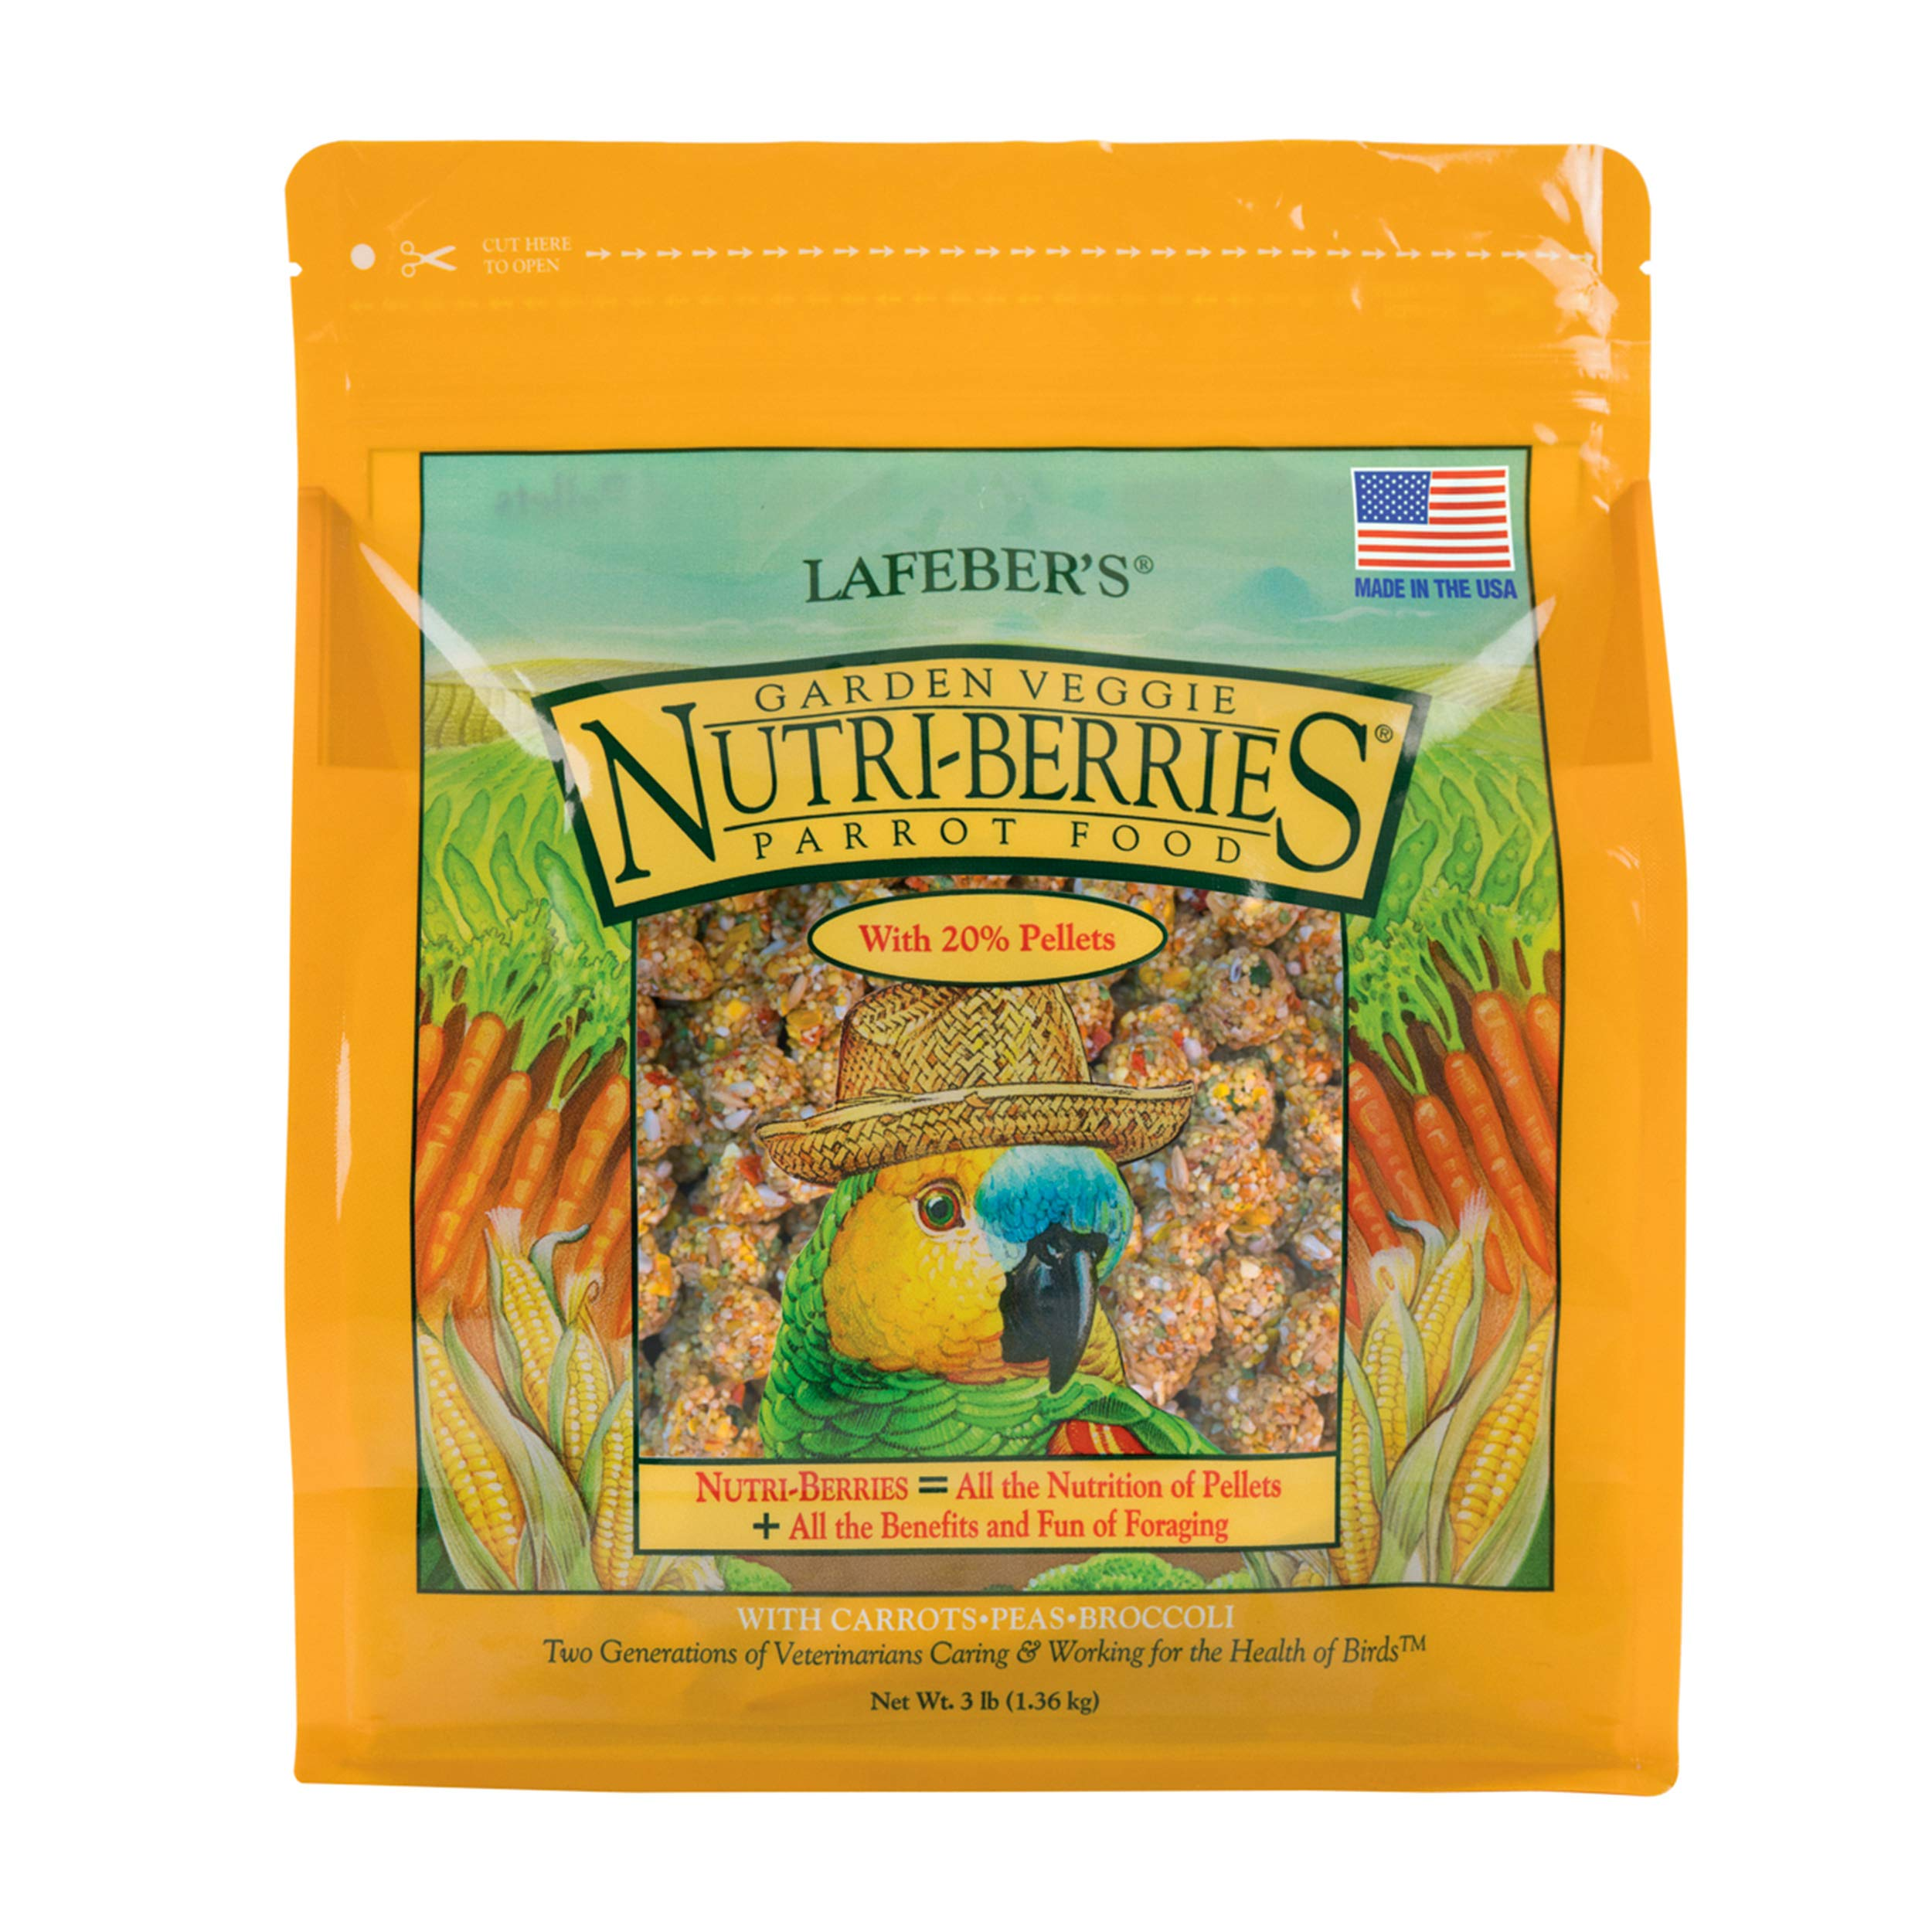 LAFEBER'S Garden Veggie Nutri-Berries Pet Bird Food, Made with Non-GMO and Human-Grade Ingredients, for Parrots, 3 lbs by LAFEBER'S